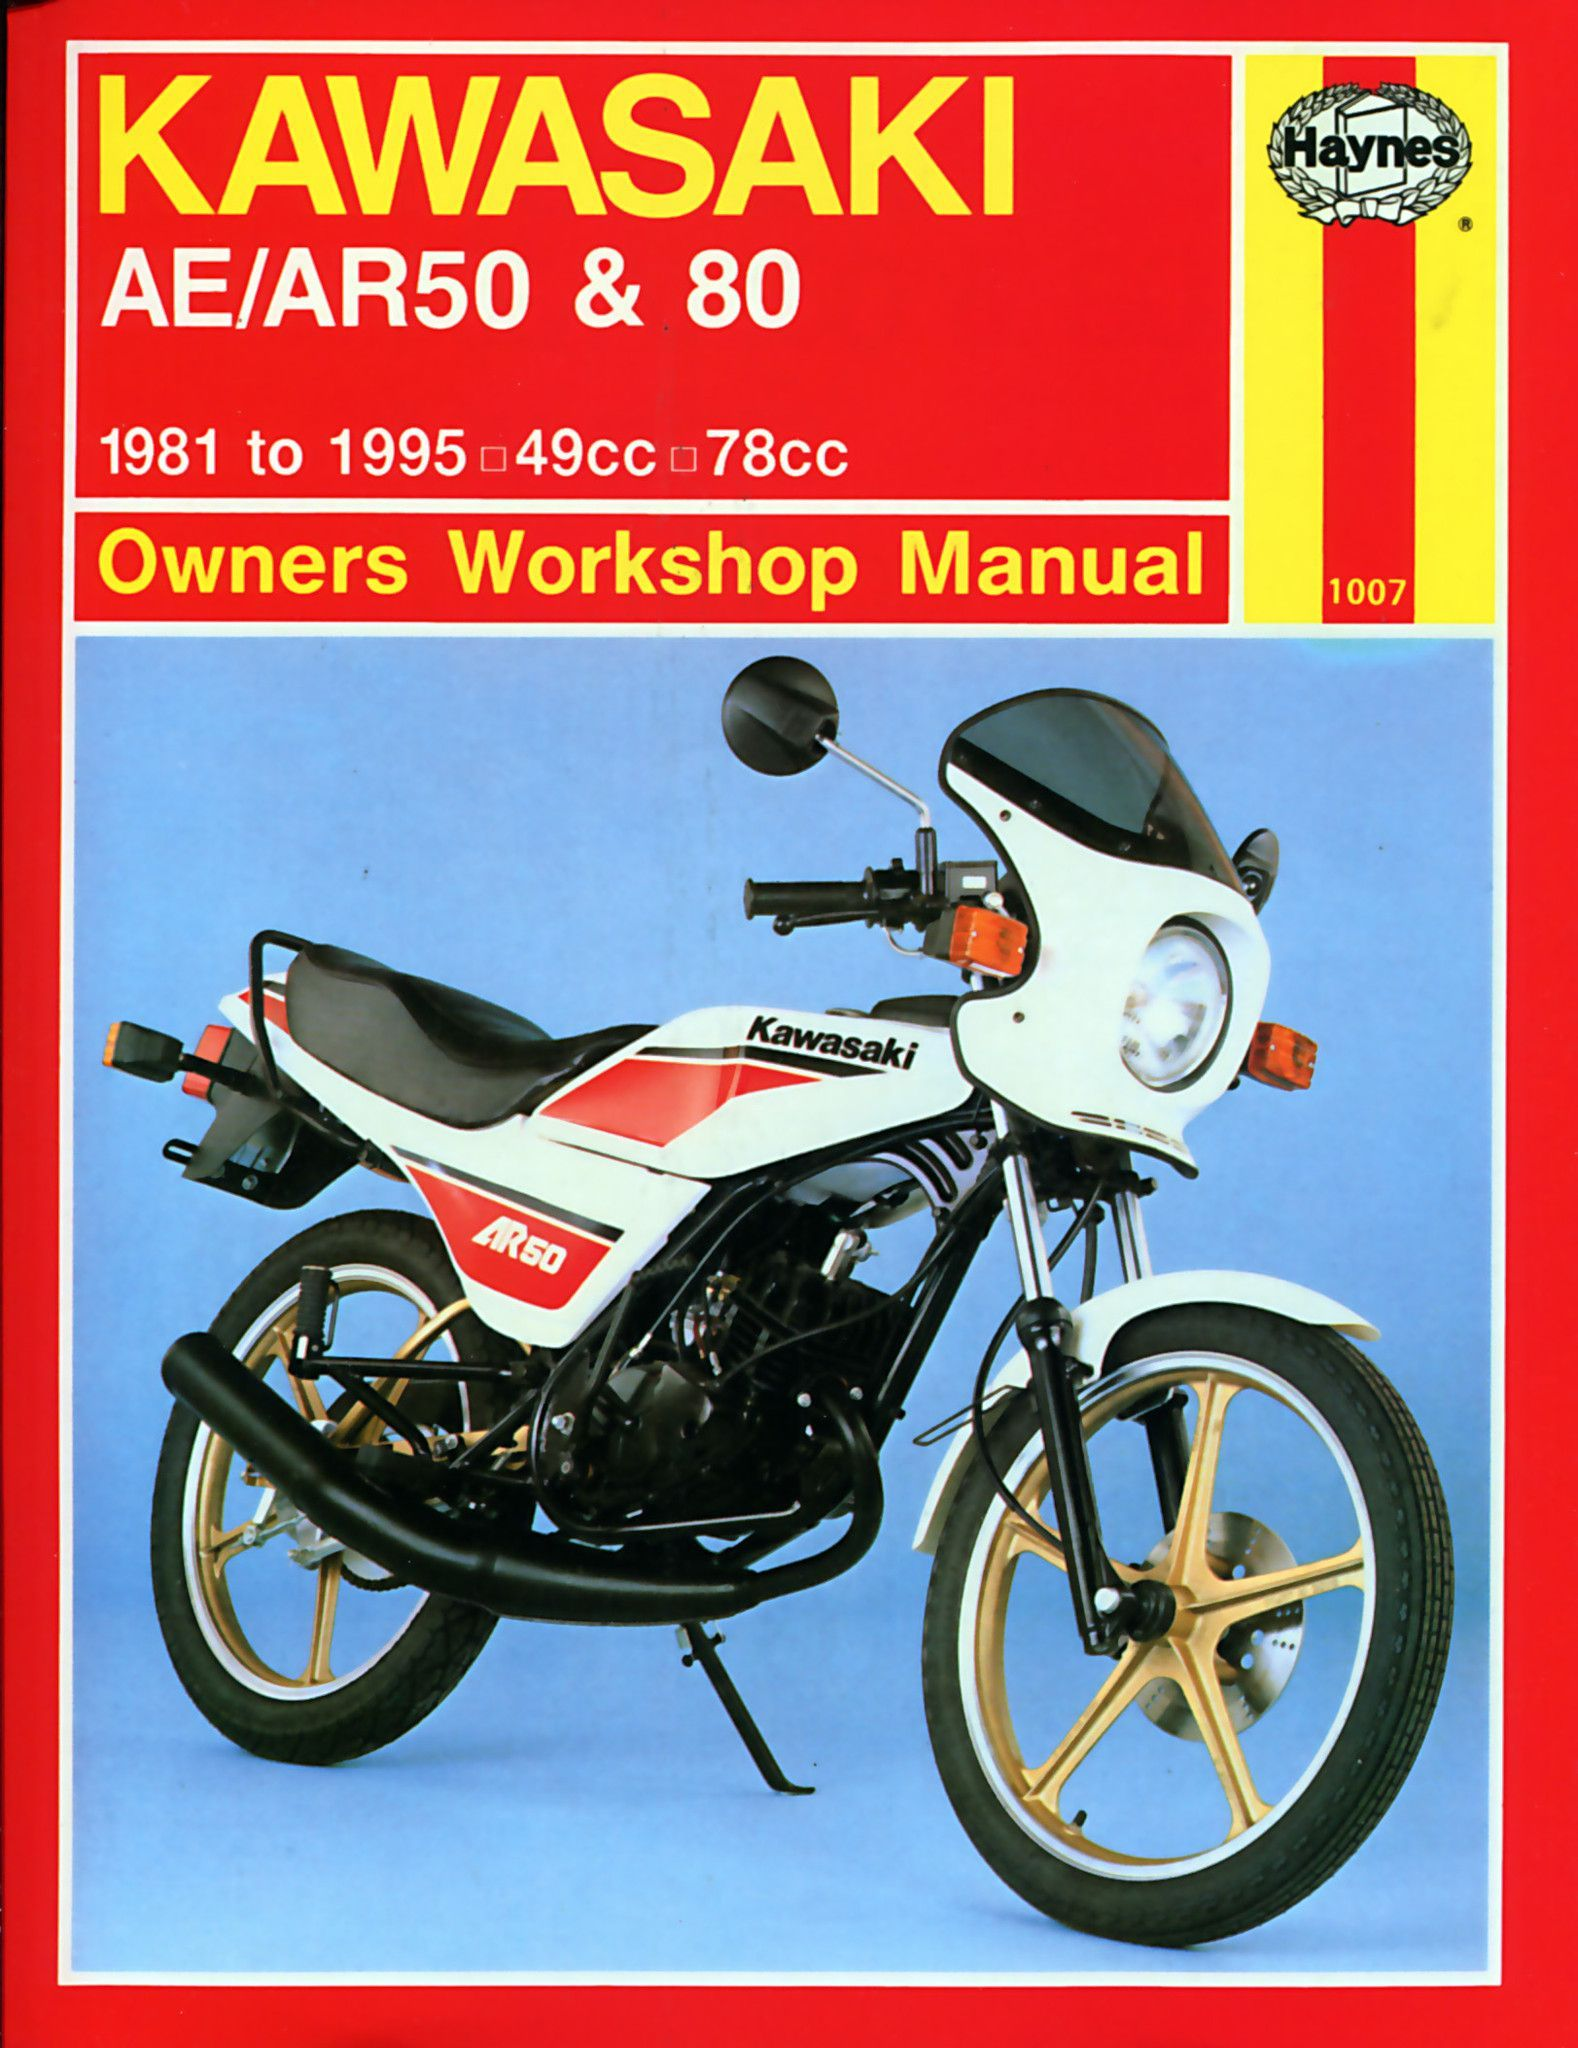 Haynes M1007 Repair Manual for 1981-82 Kawasaki AR50 and AR80